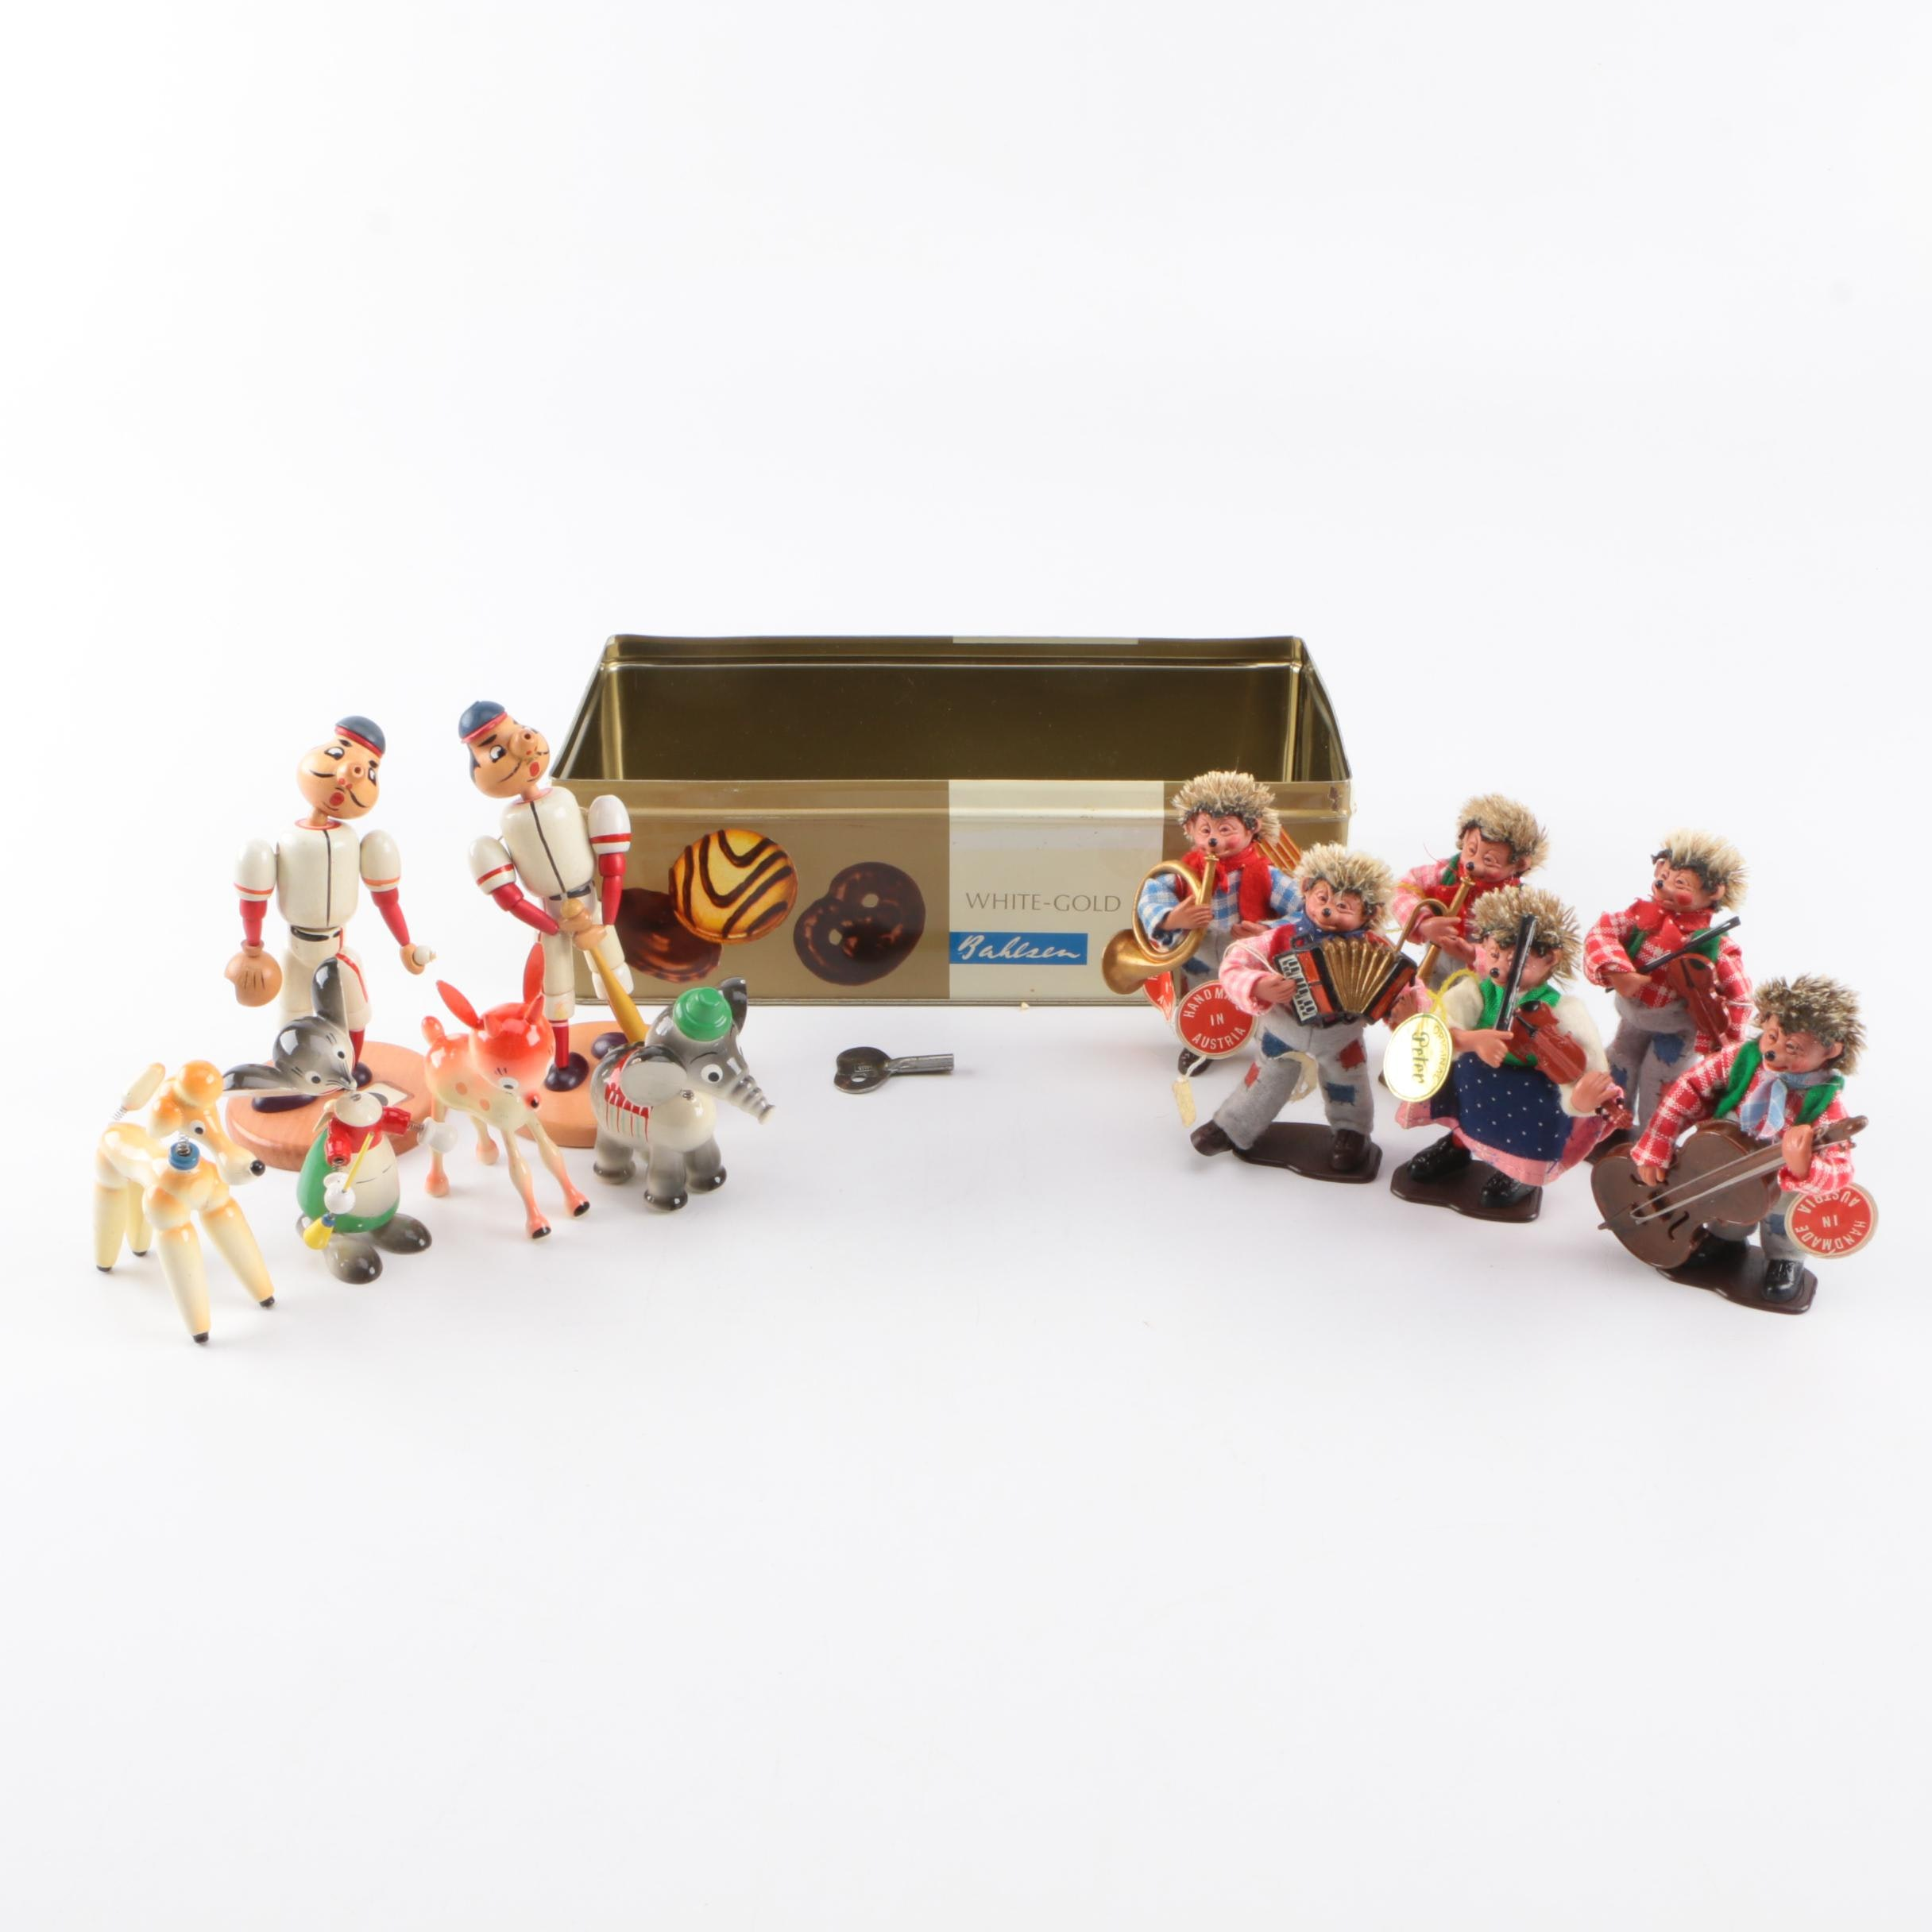 European Wood Figurines, Hand Carved Toys